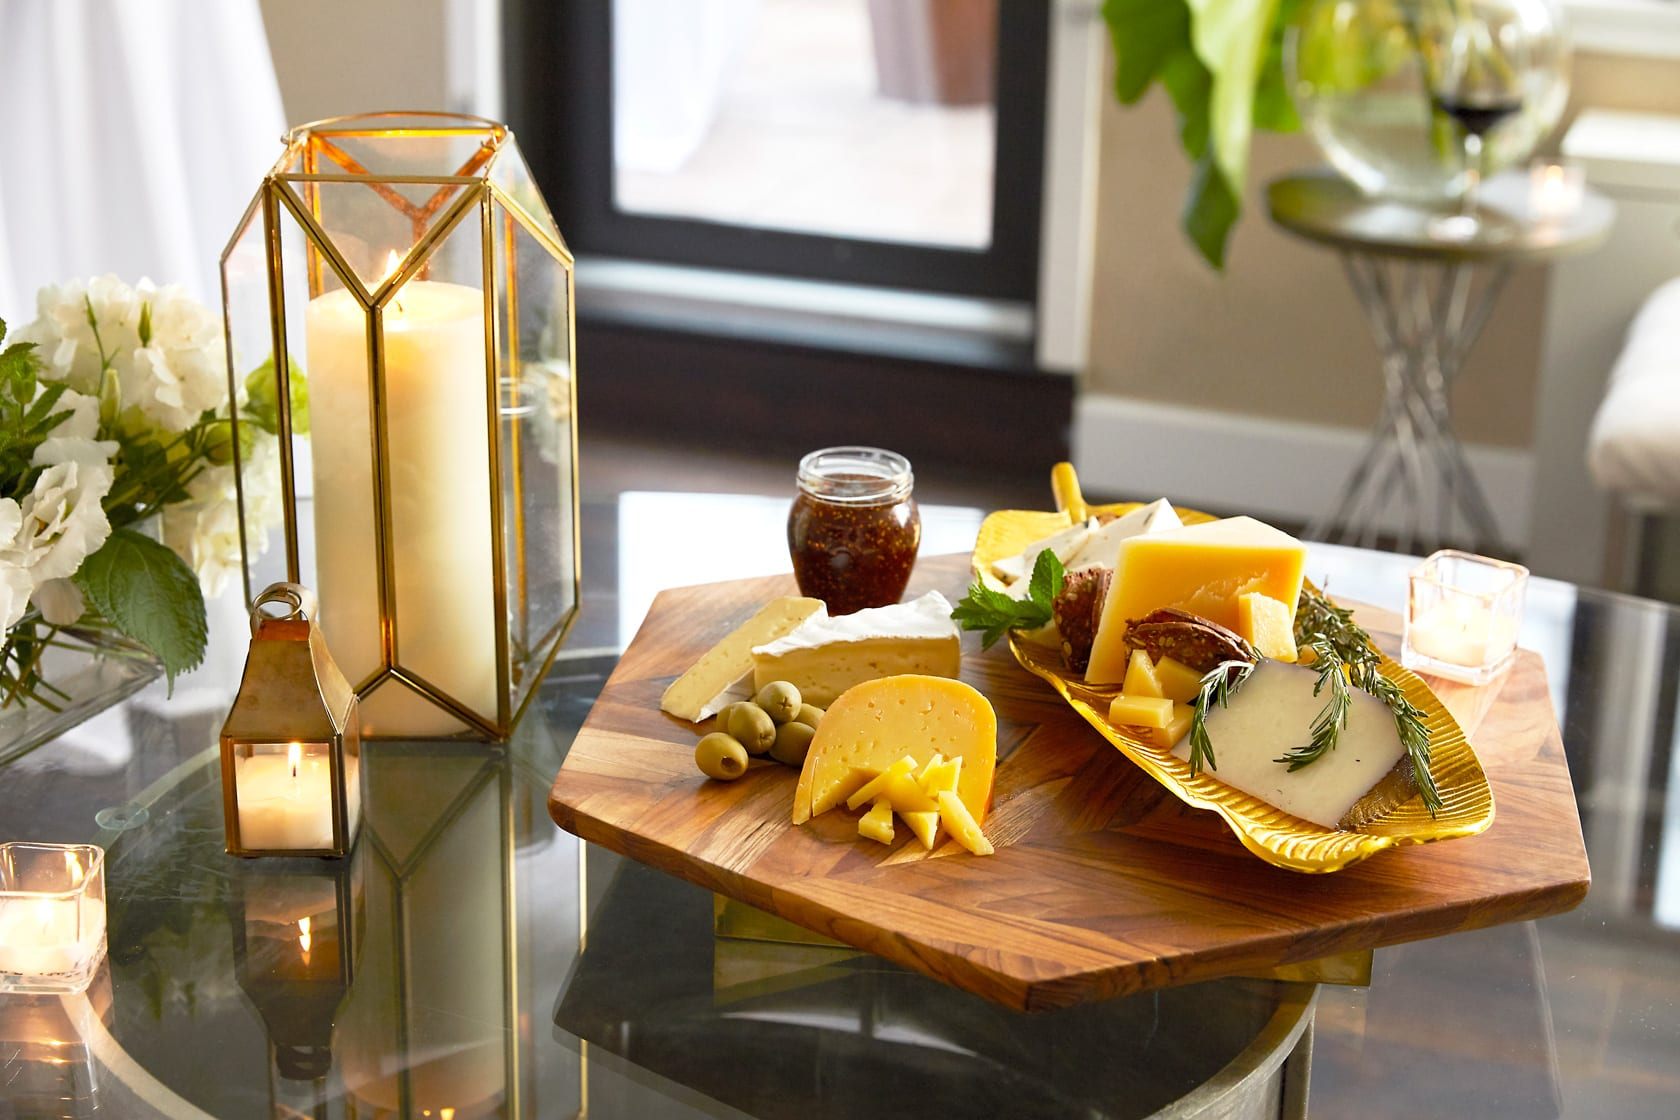 Close up of a wooden board, displaying meats and cheeses along a long plate. To the left is a glass of red wine and some cheese that is being sliced. A tall candle lantern is placed to the side of this display.